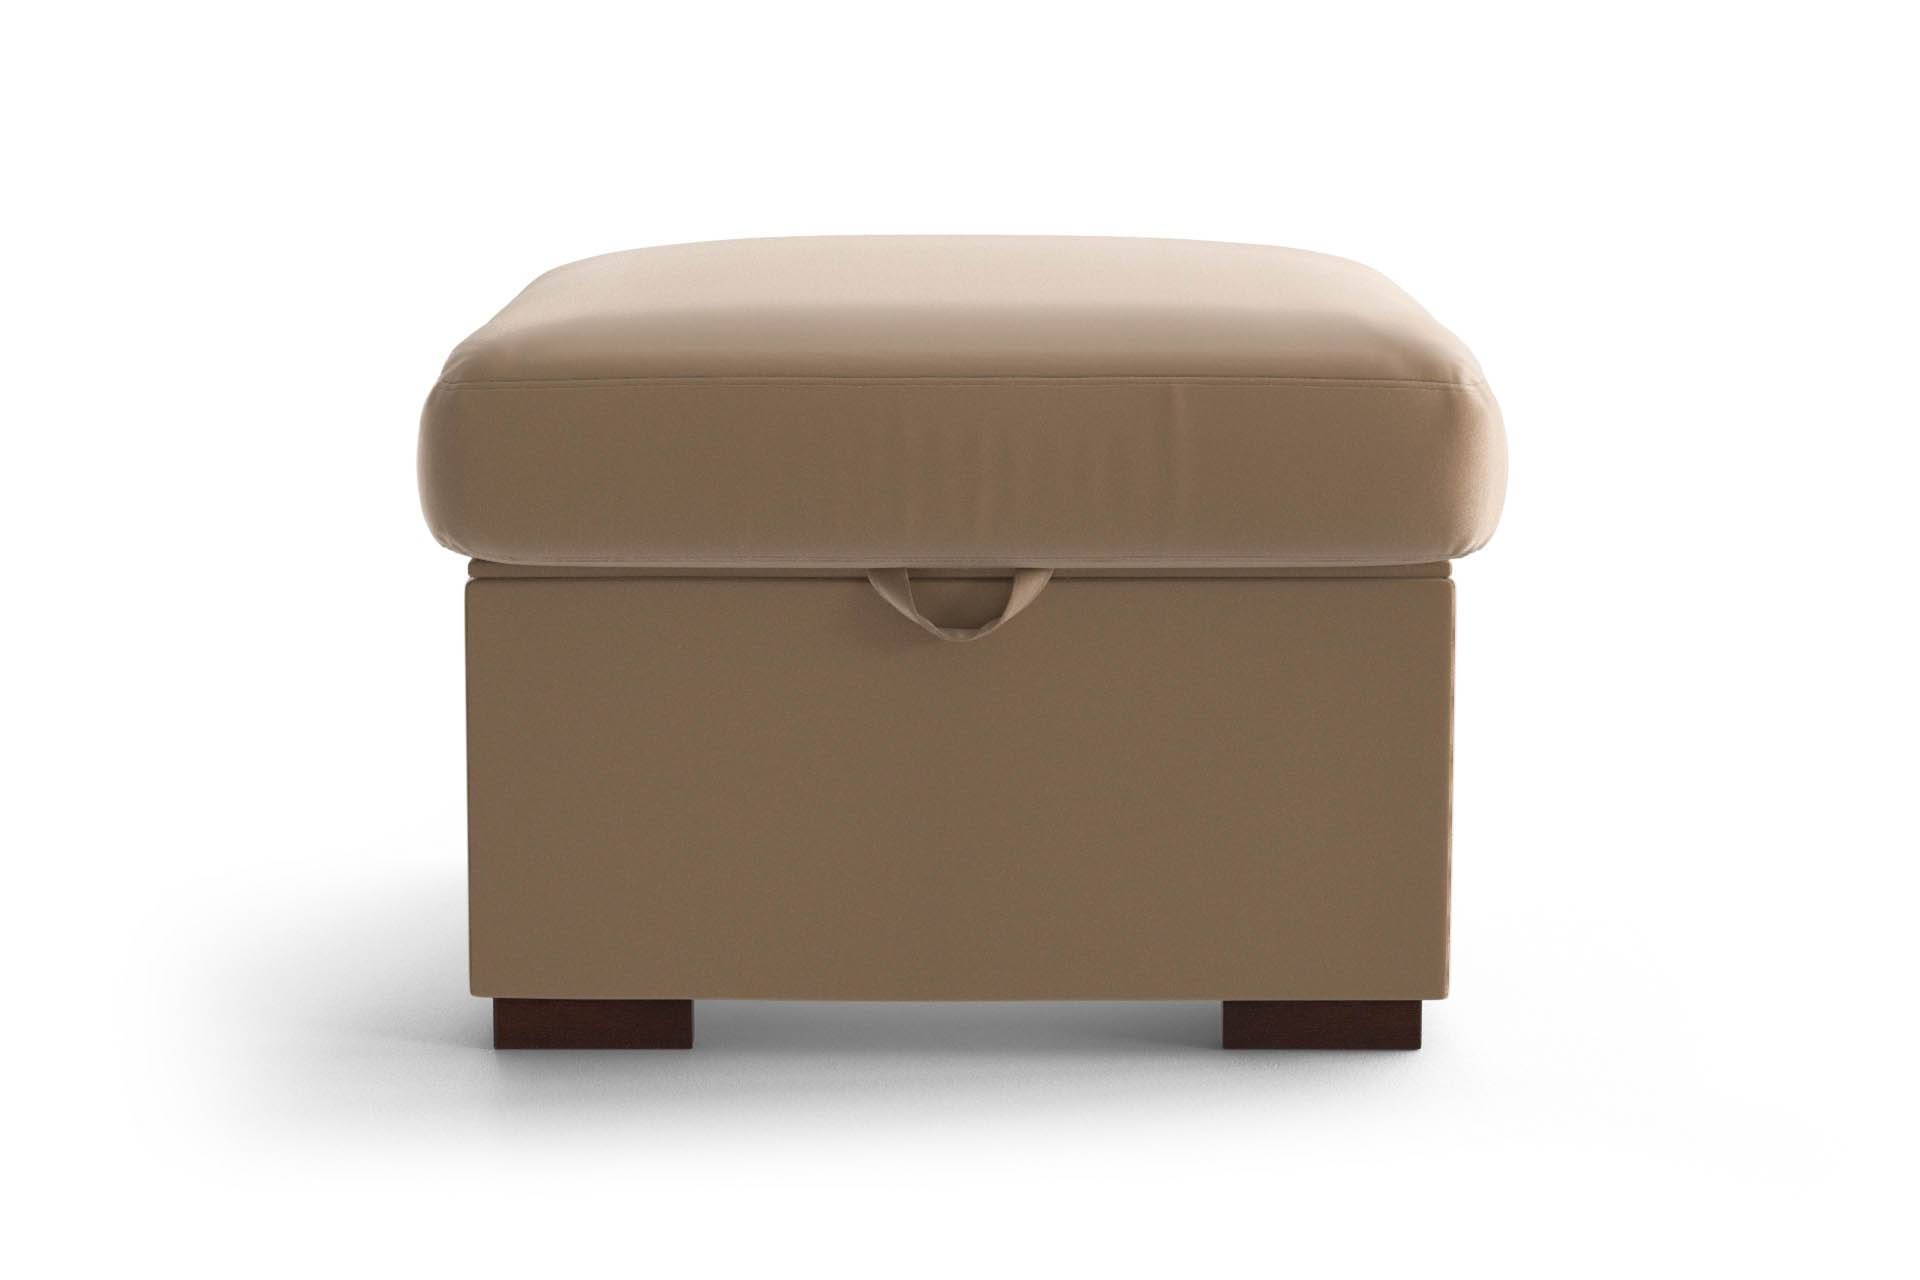 My Pop Design Pouf 1 Place Sable My Pop Design Odéon Toucher Velours Pieds en Bois Naturel